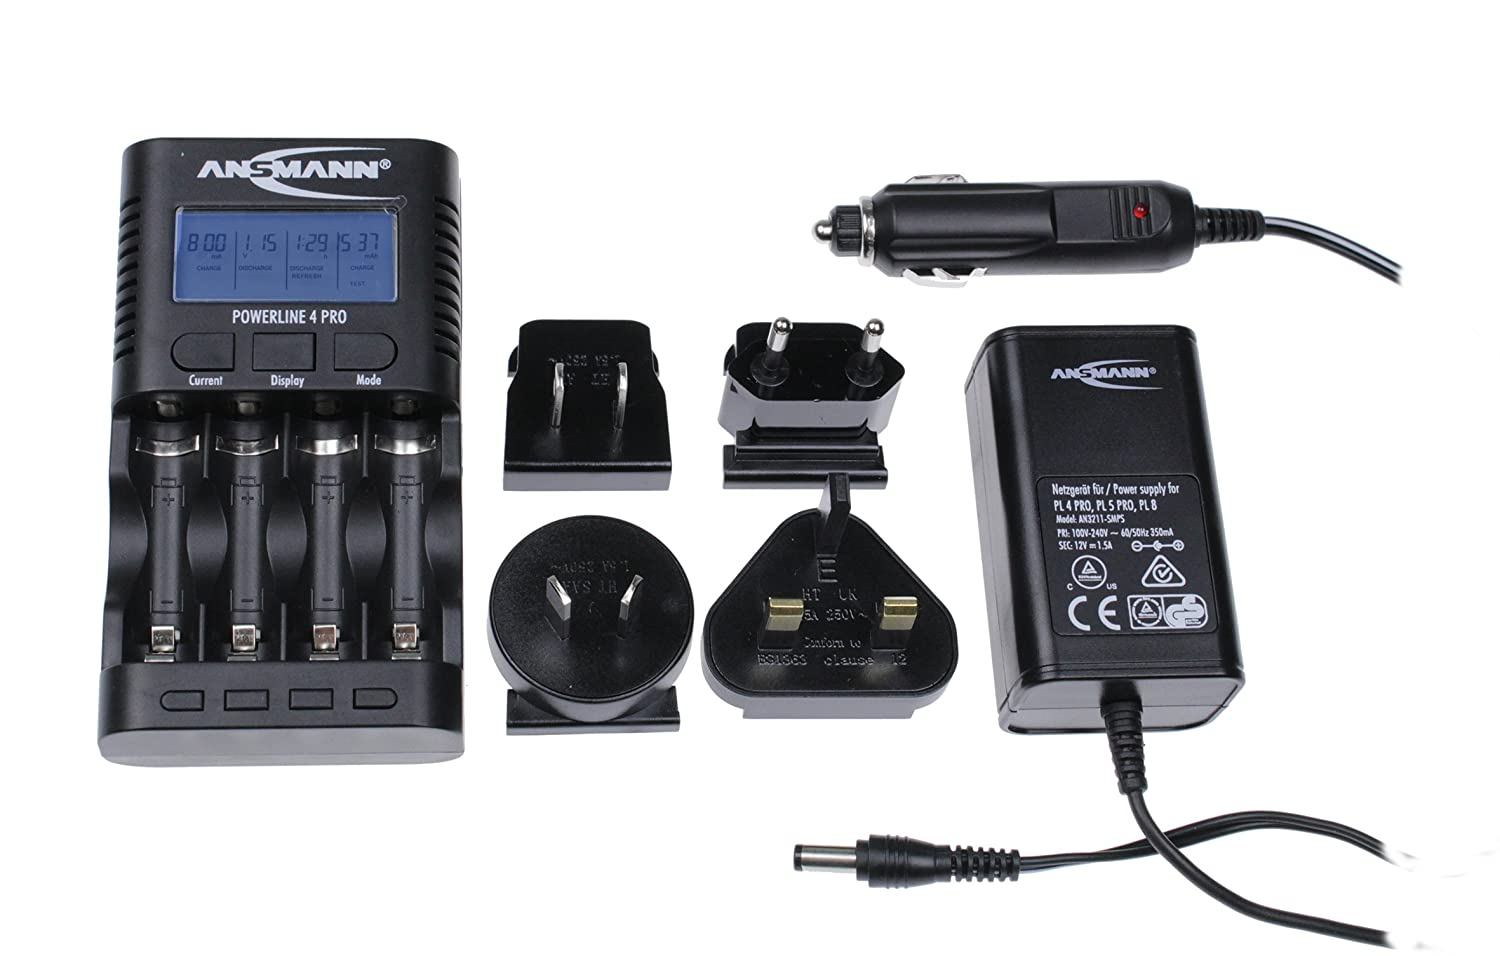 ANSMANN Powerline 4 Pro battery charger with UK, EU, US & AUS Plugs | 4 way fast charger to charge and discharge NiMH rechargeable 1.2V AA & AAA batteries | Pro USB port for camera, phone and tablet 1001-0005-UK-1